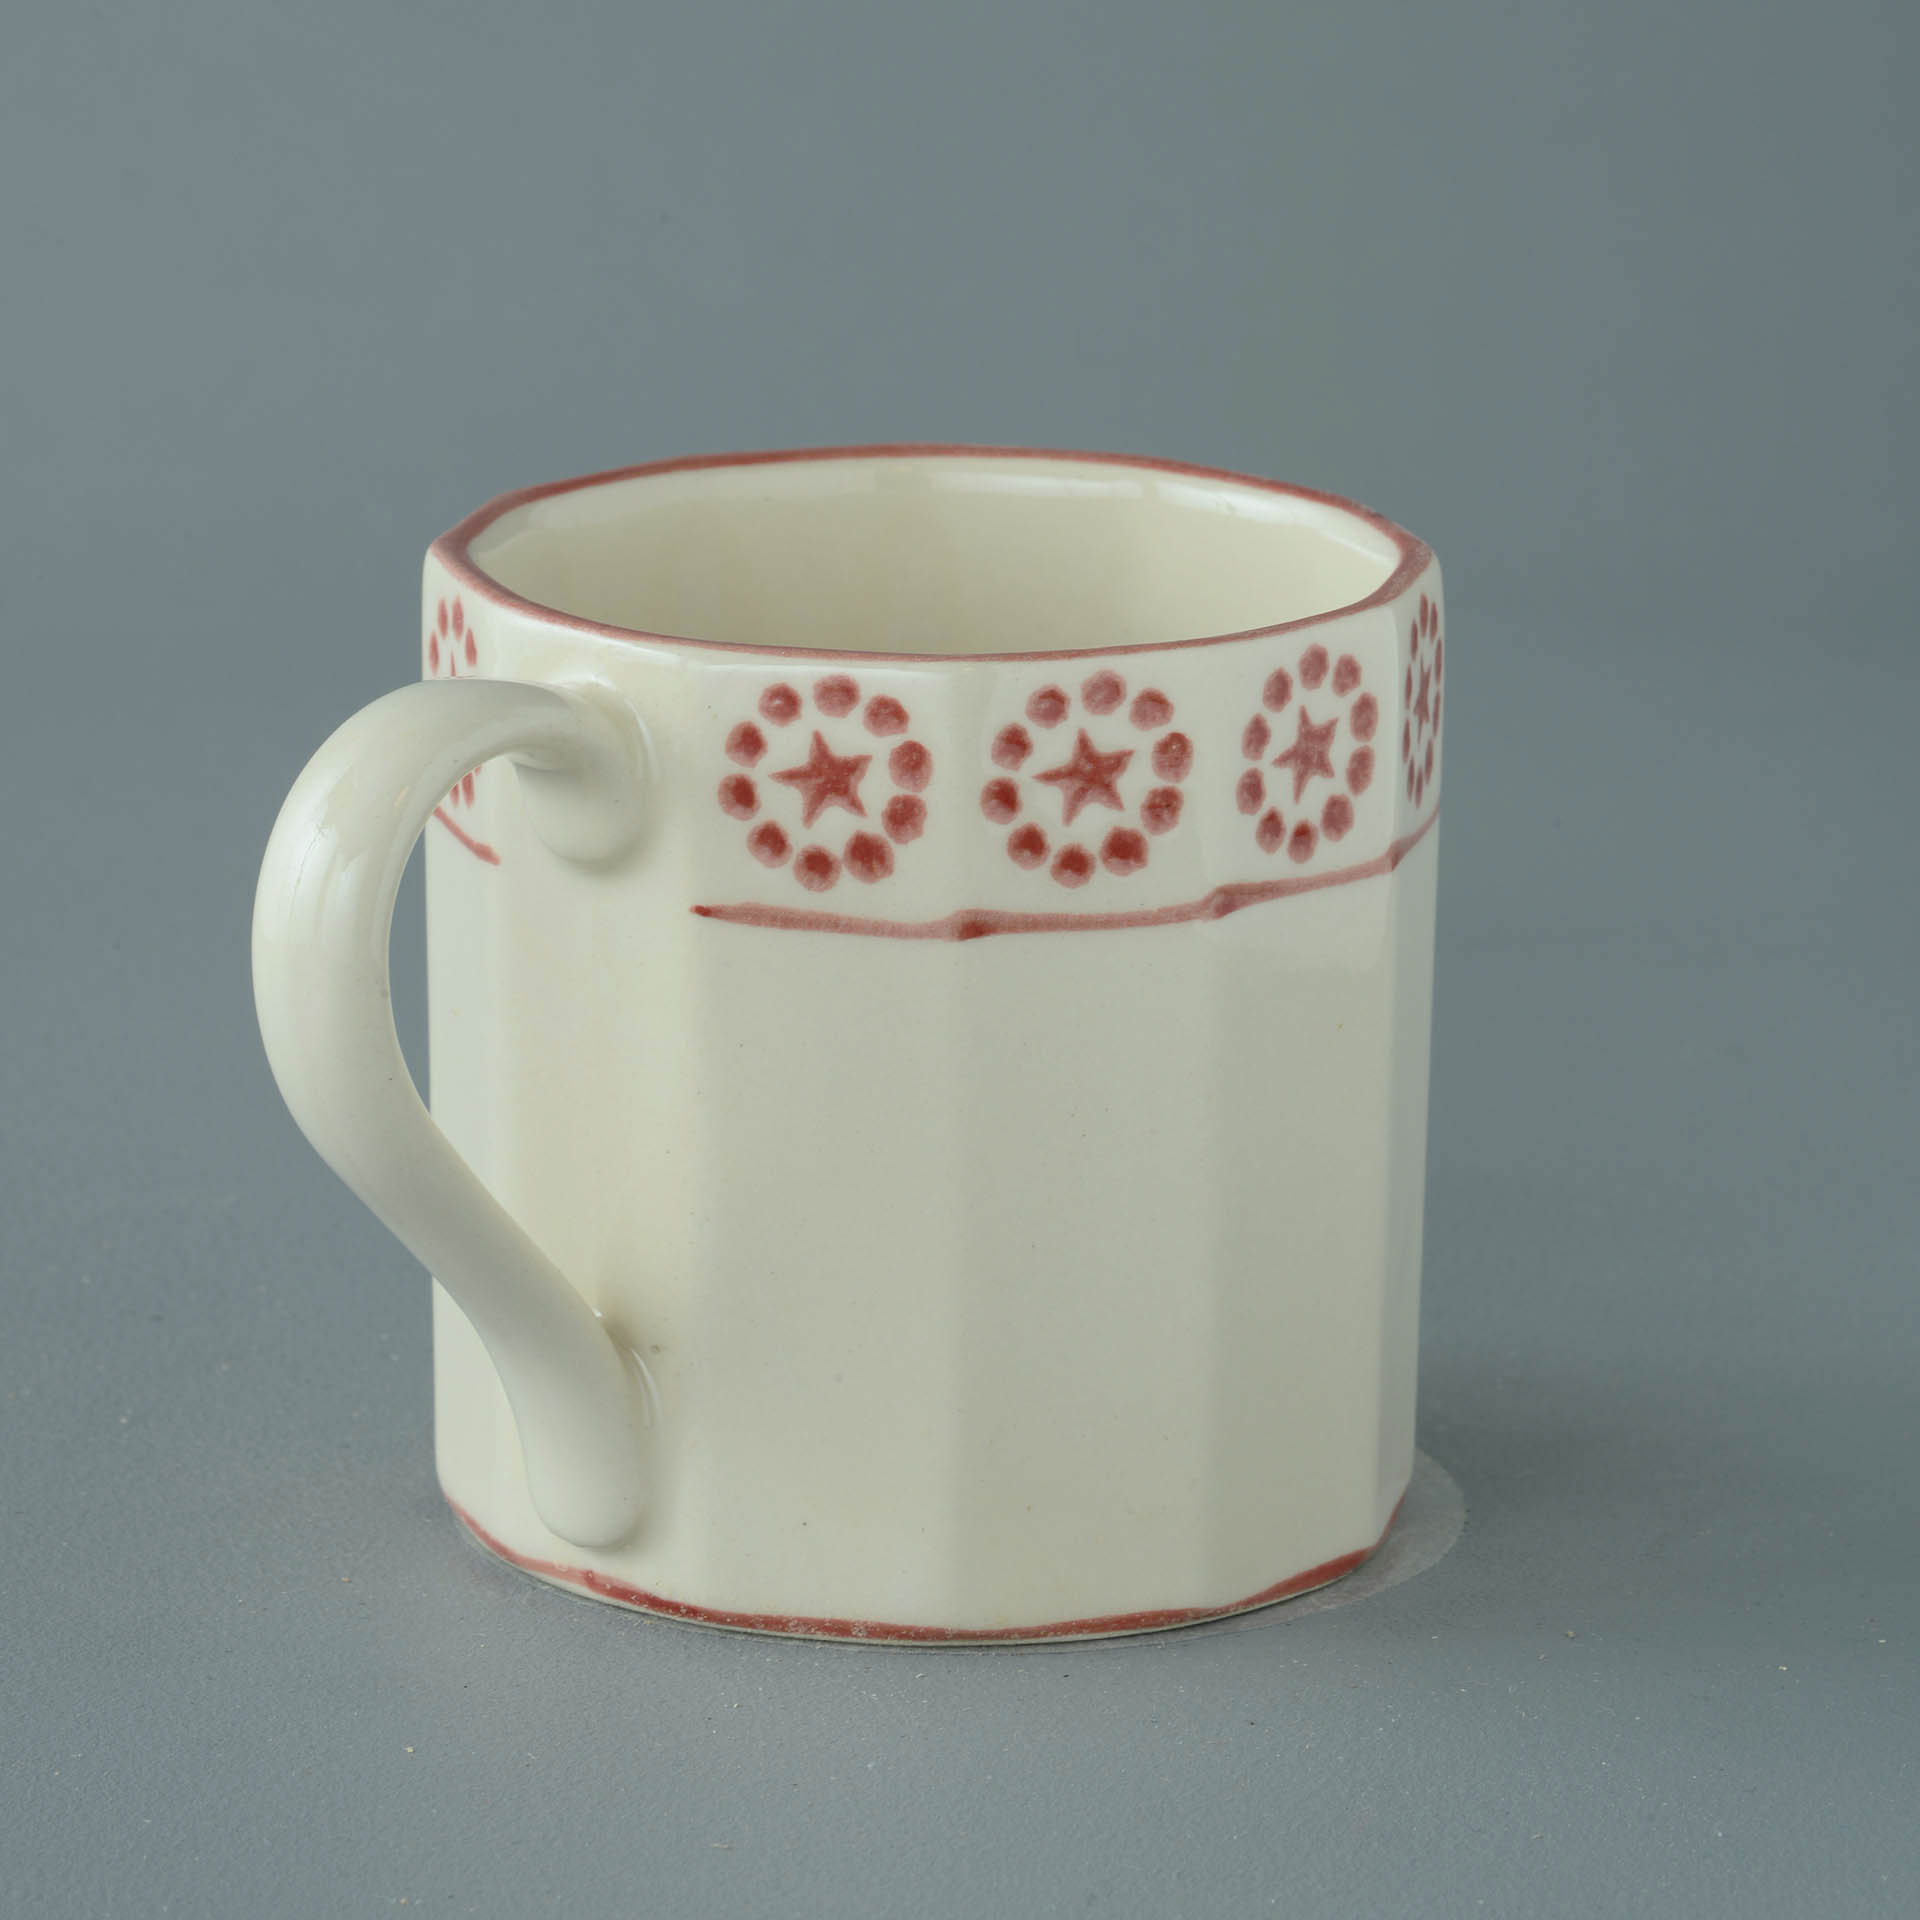 Red Star Dufort French style Mug Large